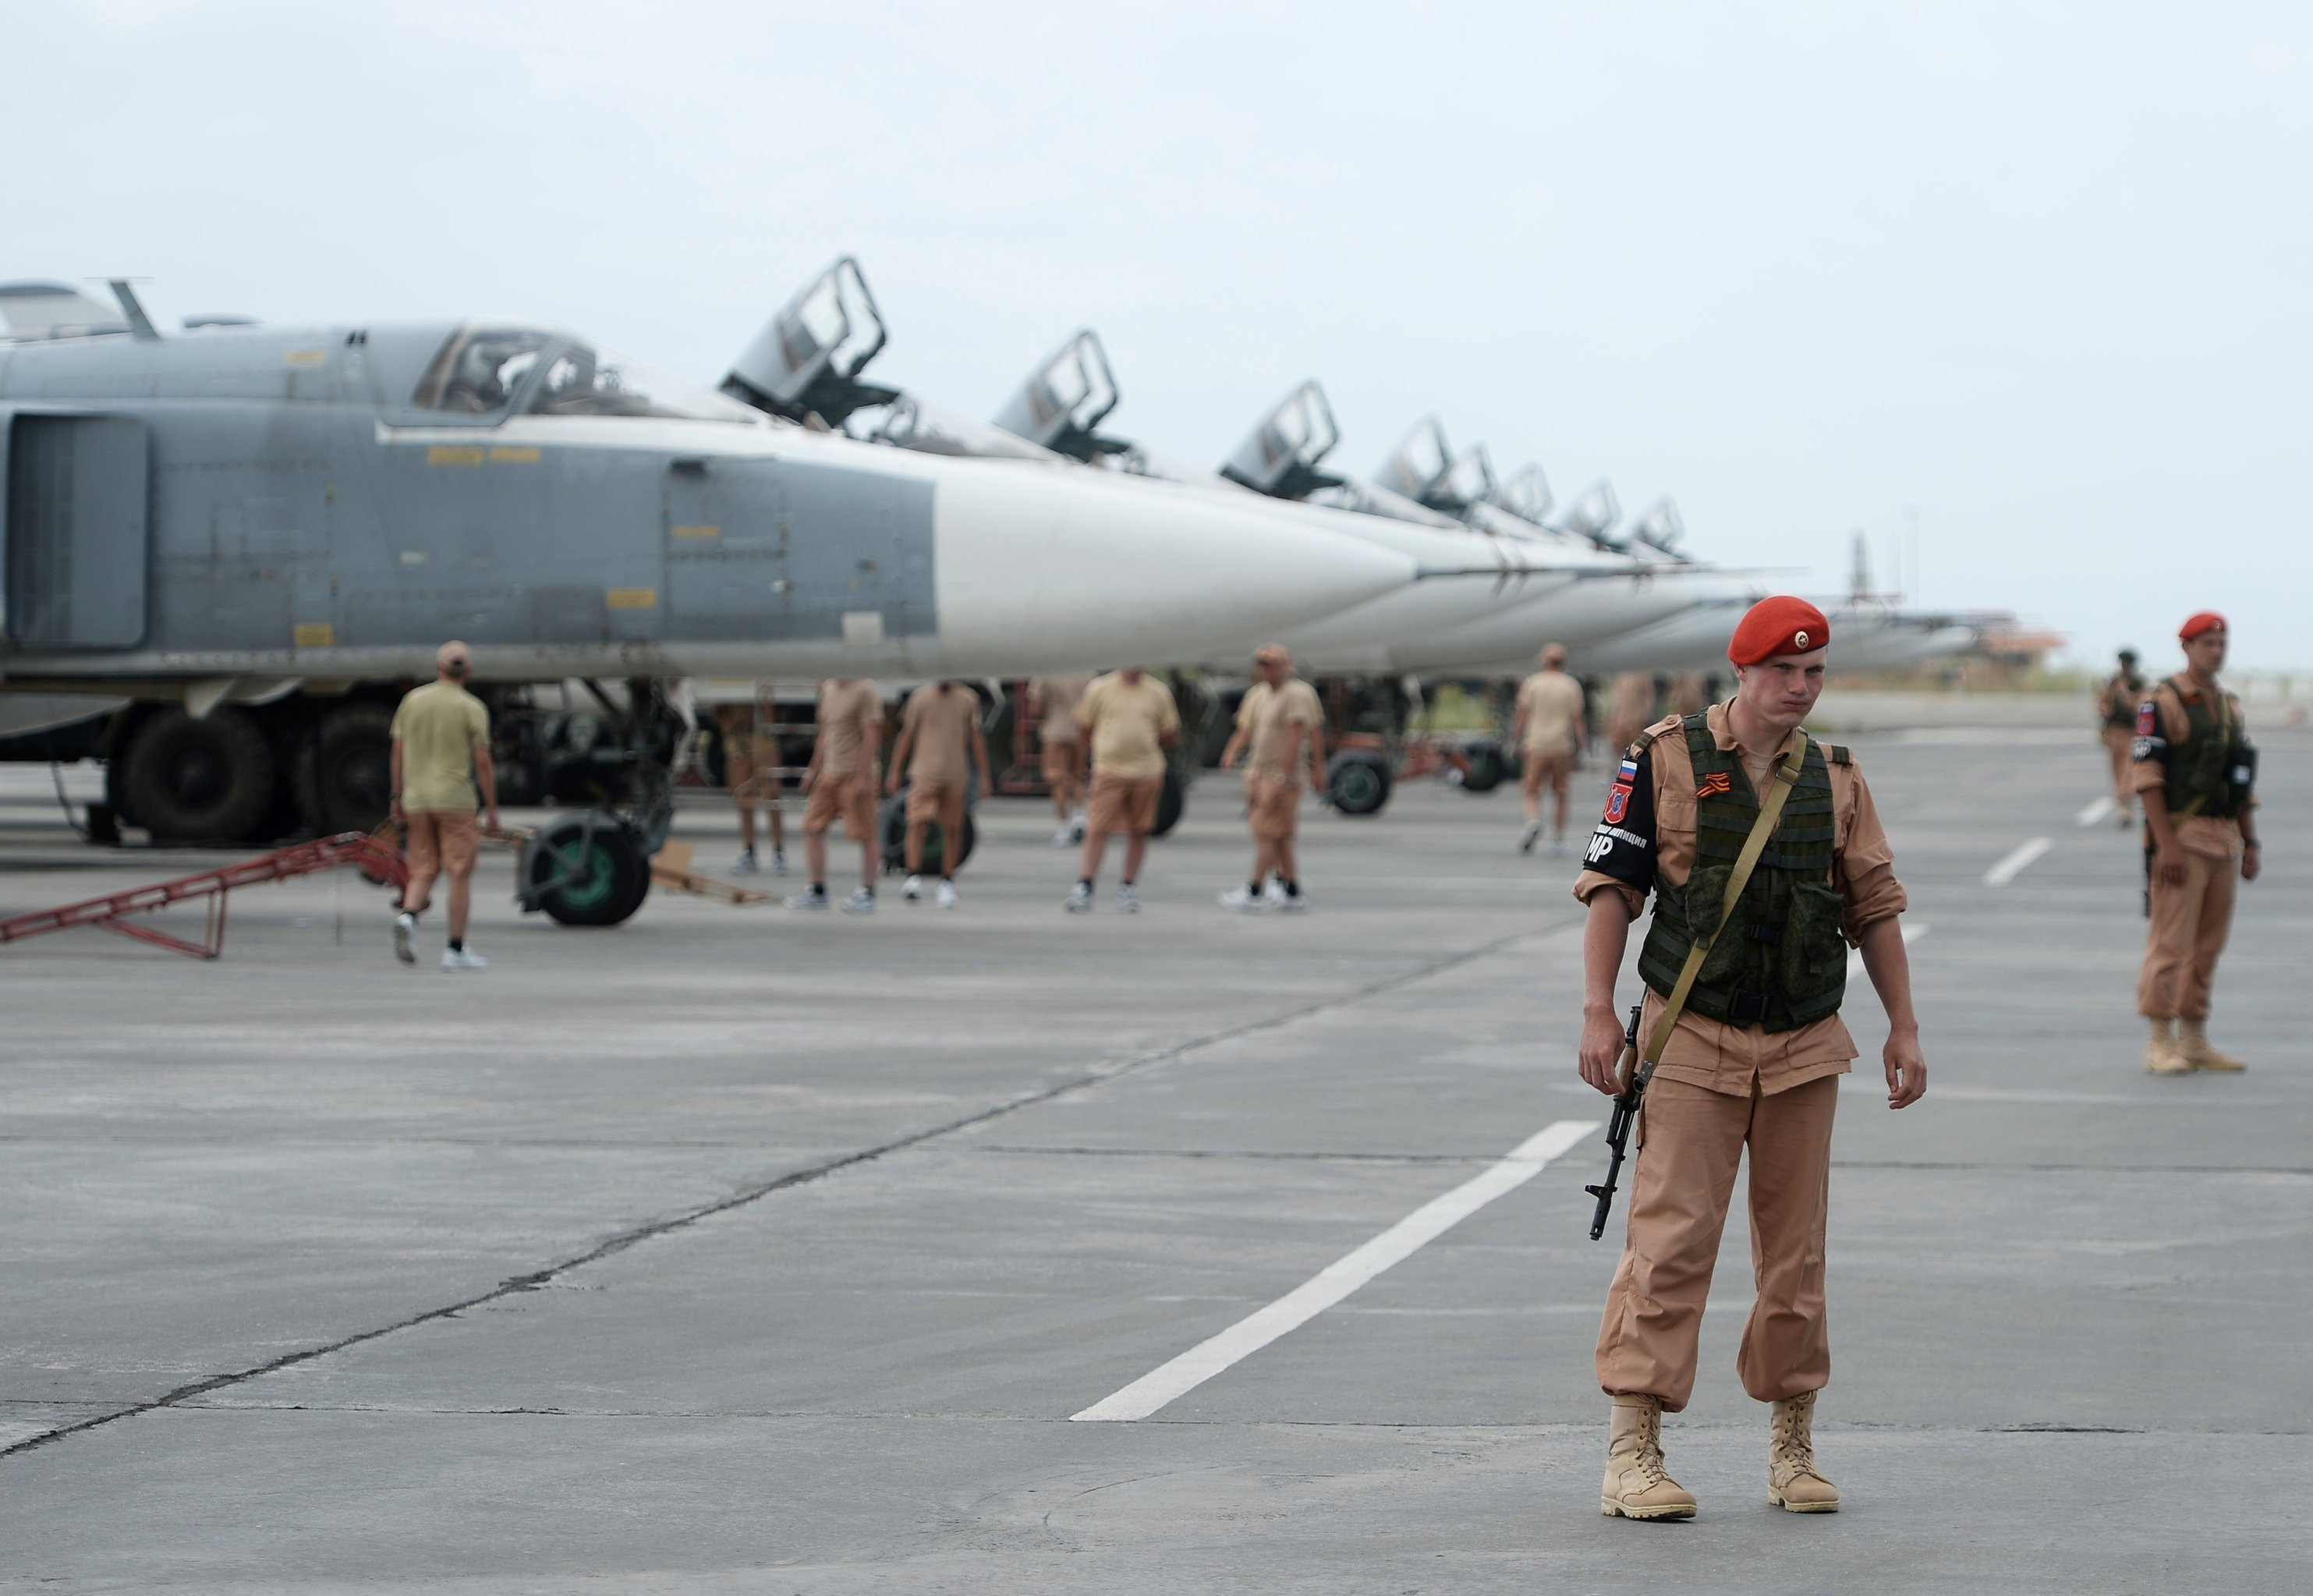 Russian servicemen at the Hmeymim airbase in Syria. File photo